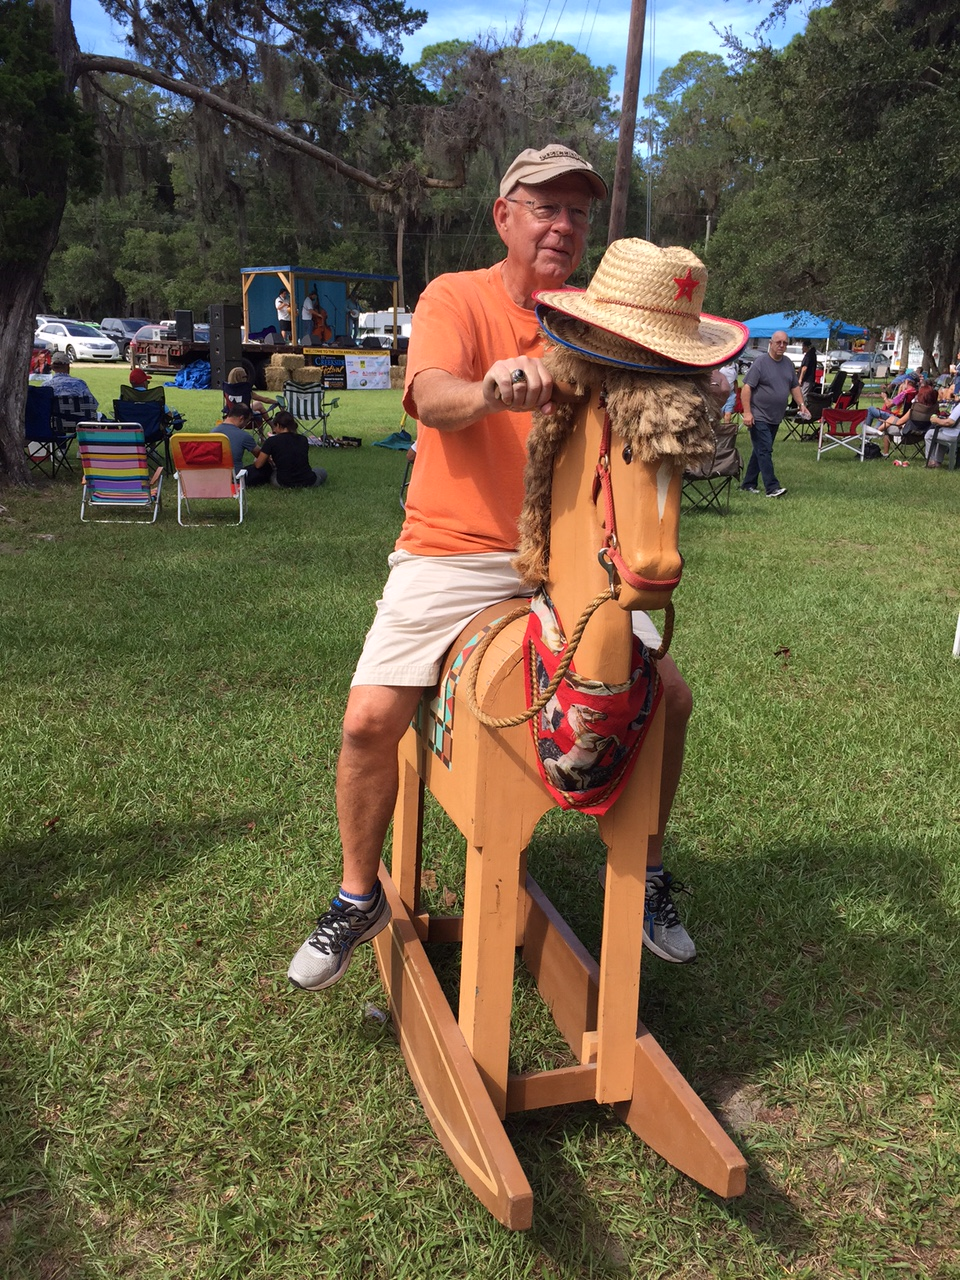 At the Creekside Festival. This is the closest Ted will ever be to riding a horse!